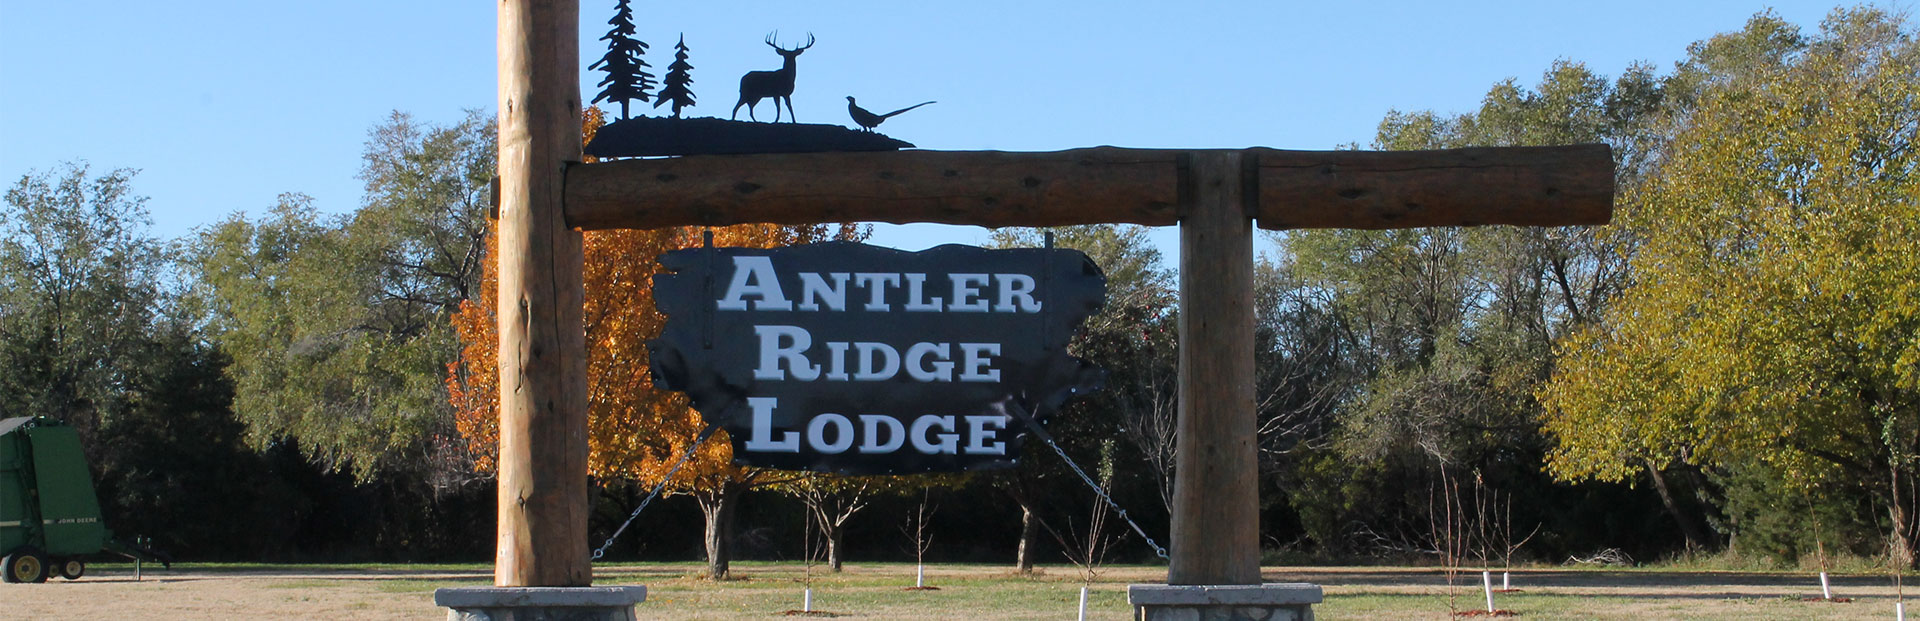 Contact Antler Ridge Lodge